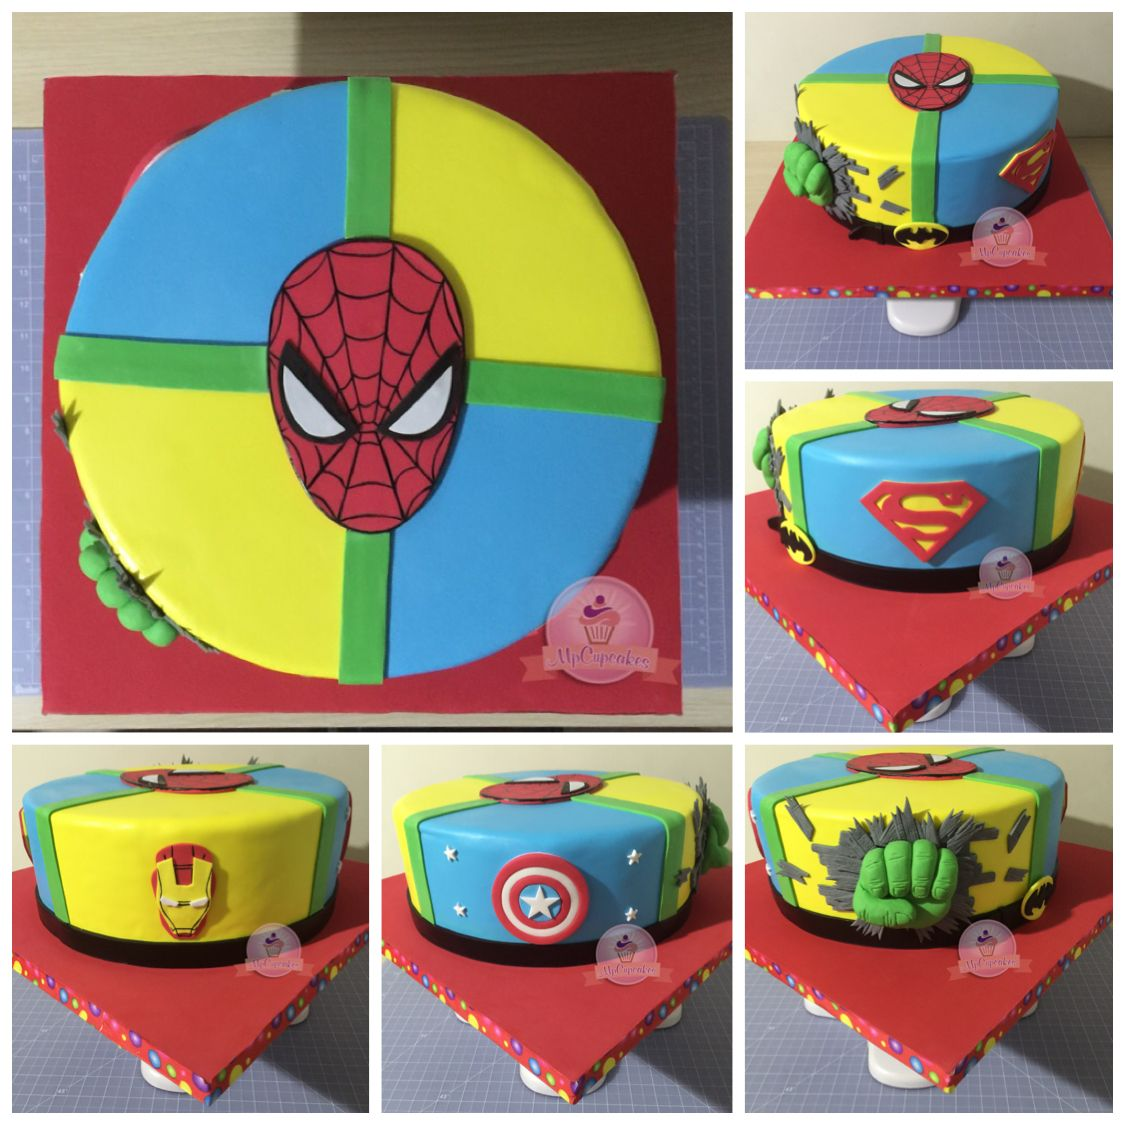 Torta de super hroes Superman Batman Hulk Spiderman Capitan